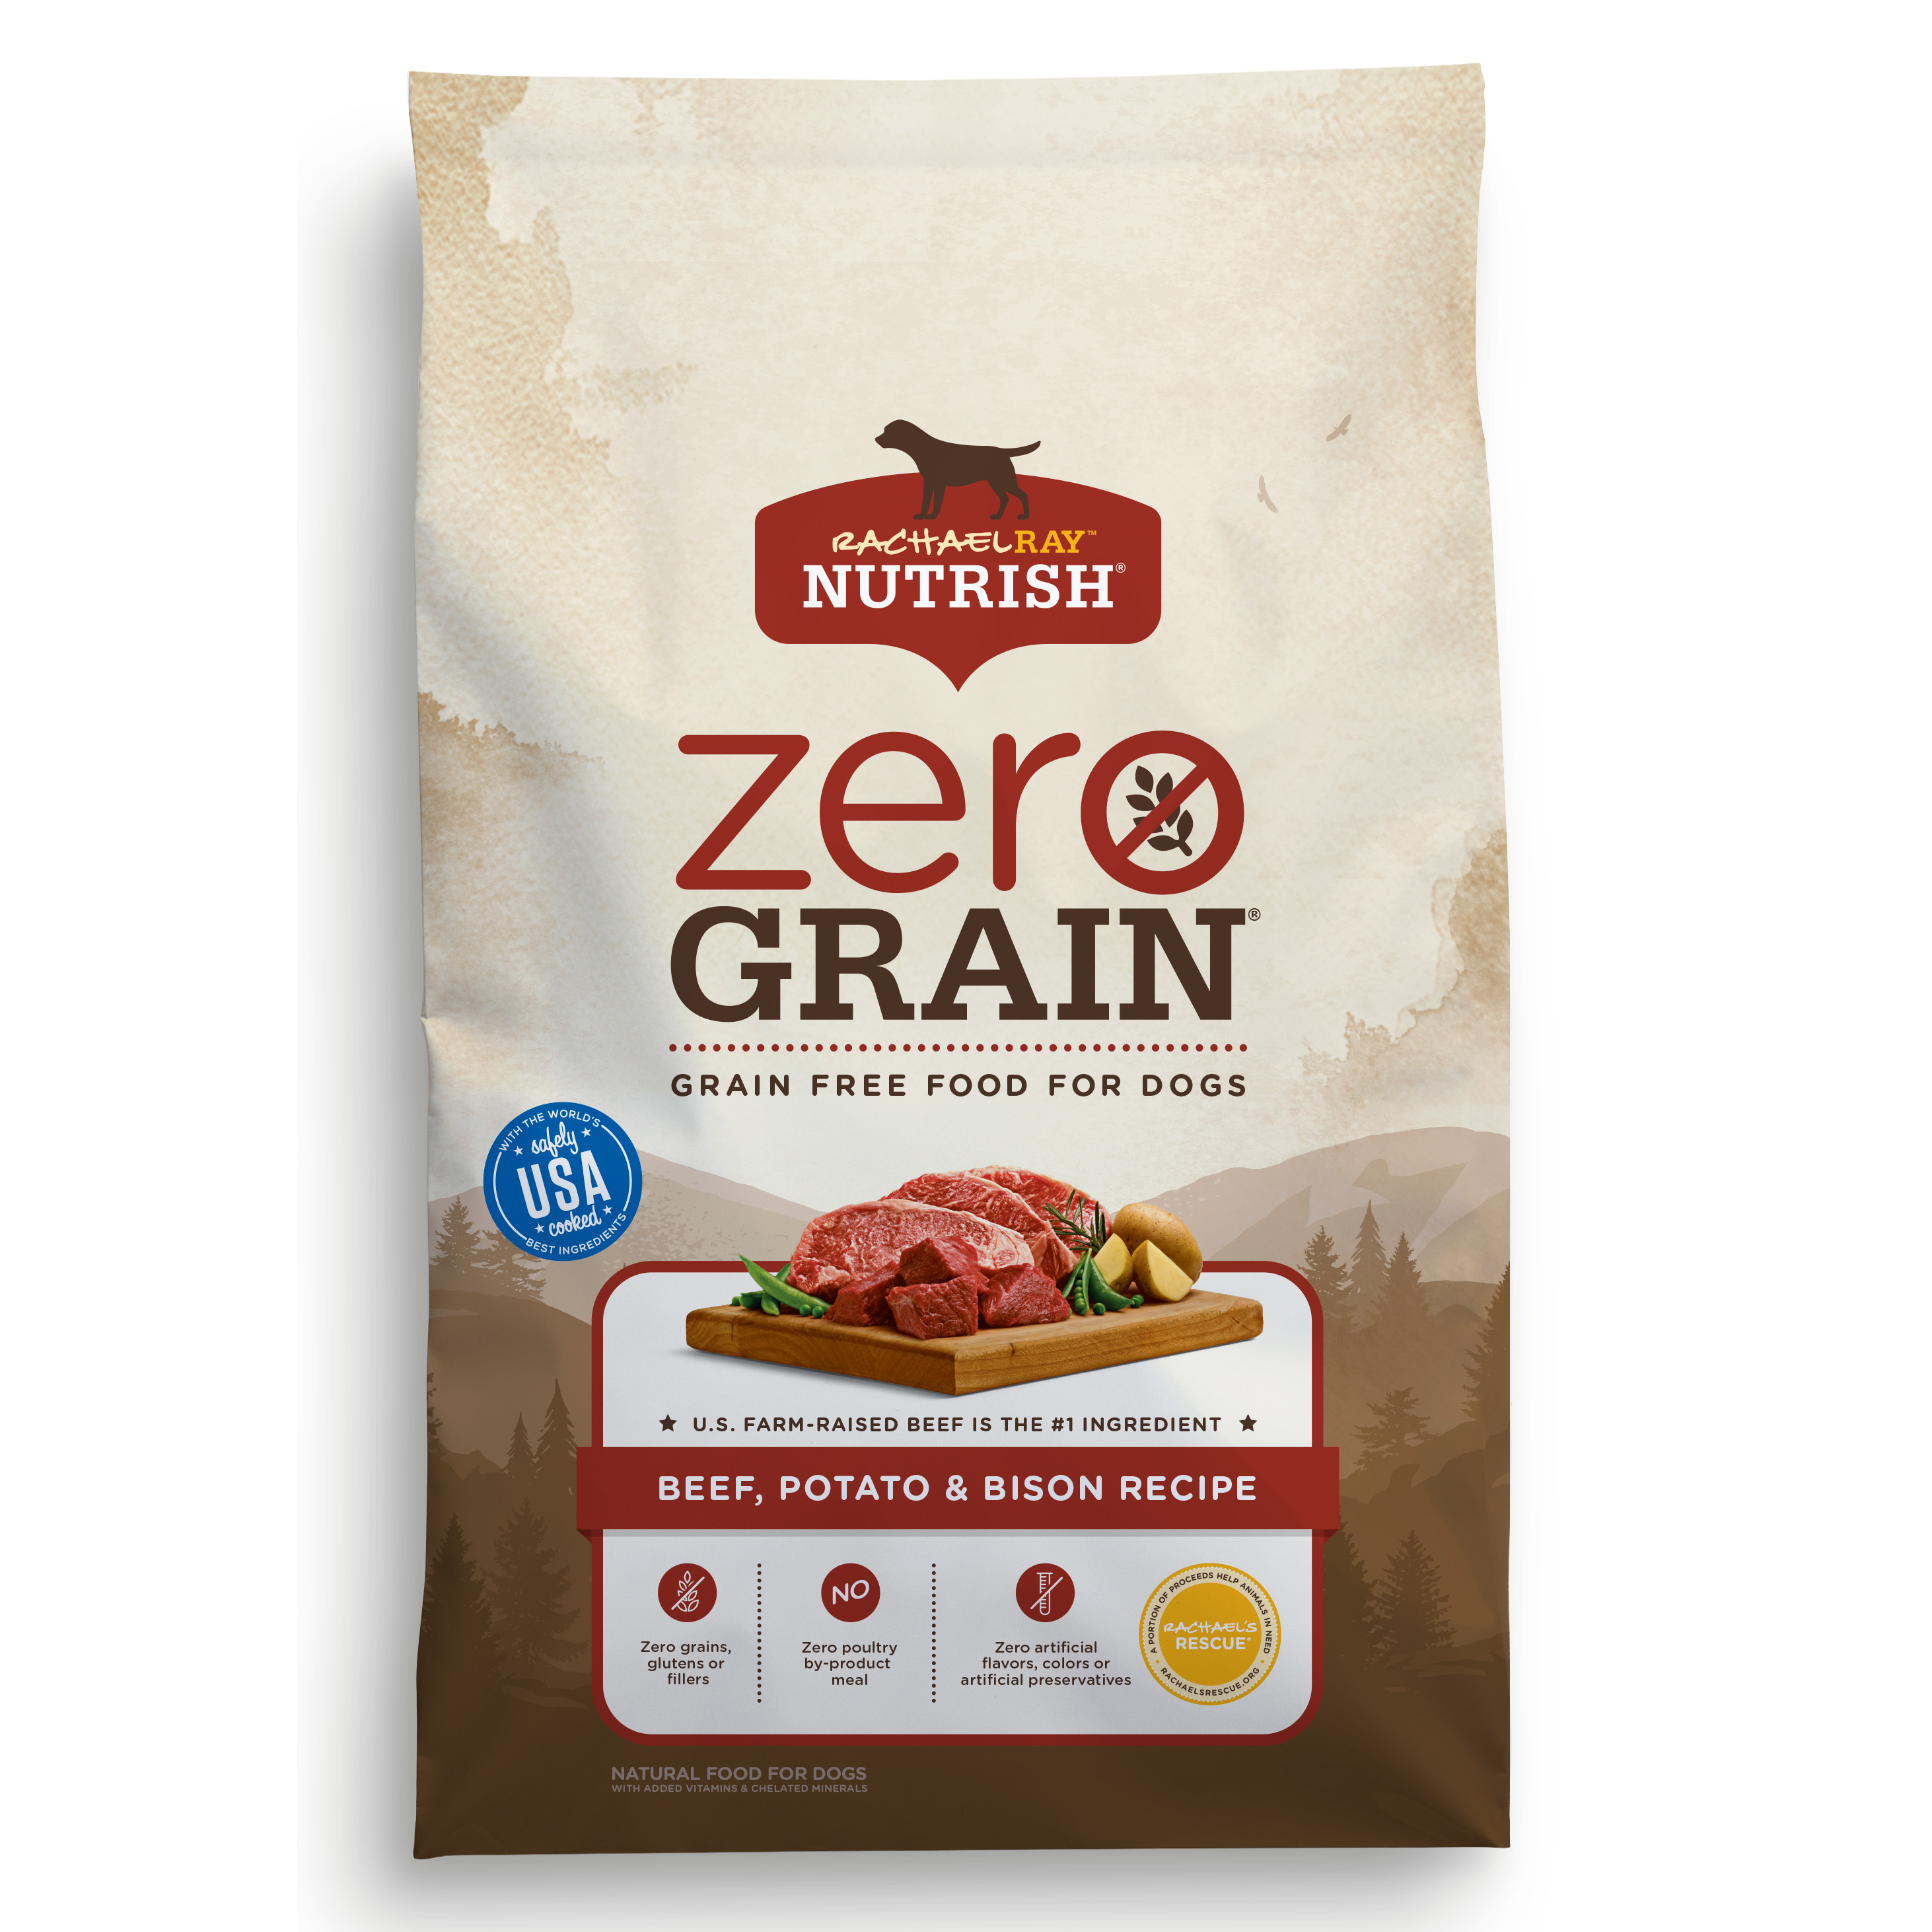 Rachael Ray Nutrish Zero Grain Natural Dry Dog Food, Beef, Potato & Bison Grain Free Recipe, 3.5 lbs